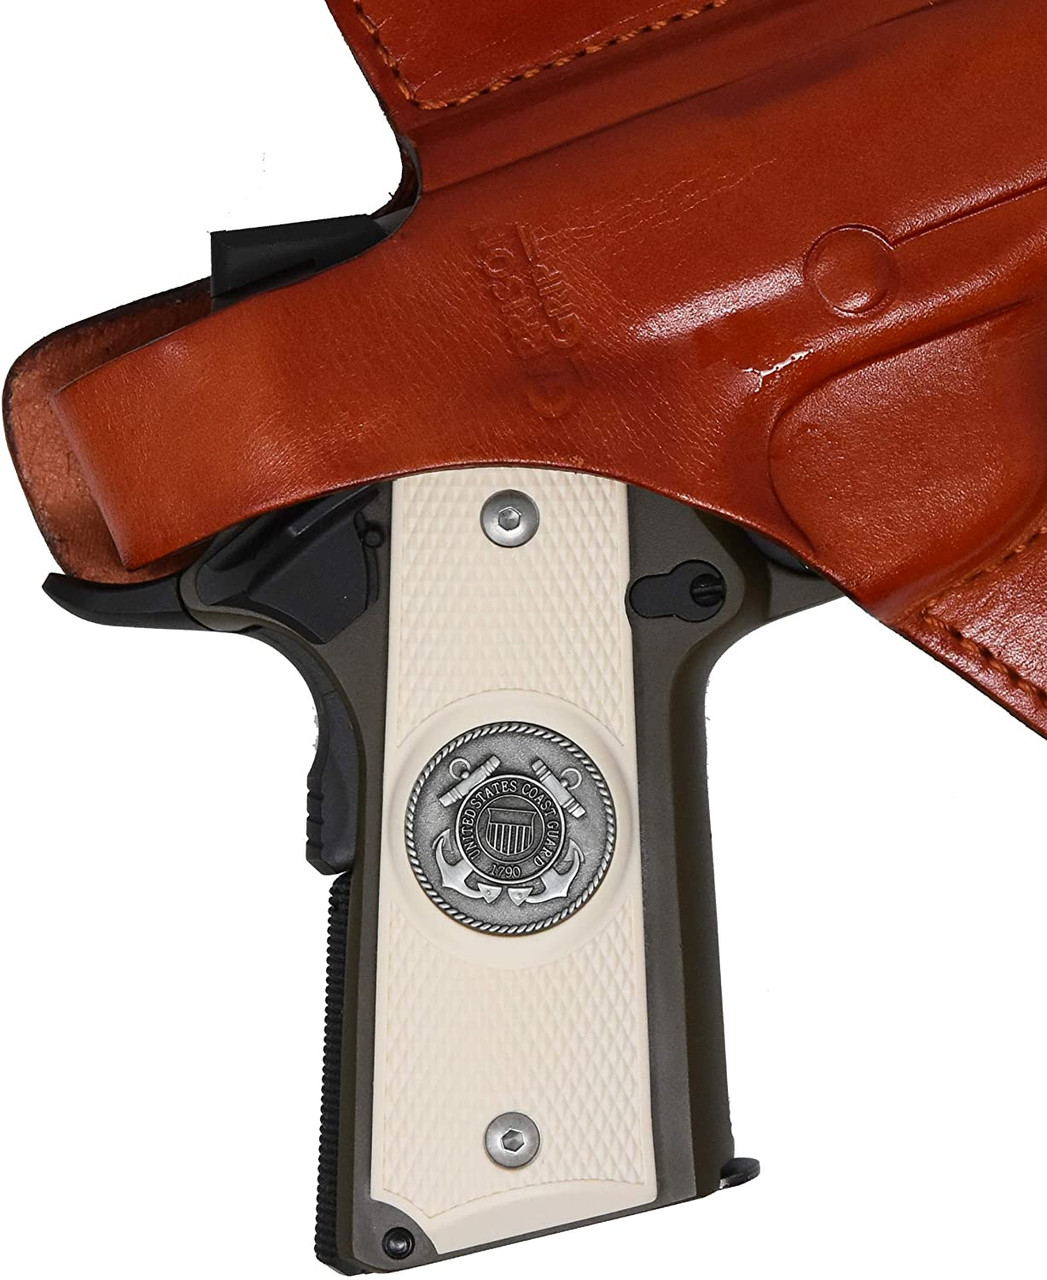 Garrison Grip 1911 Colt Full Size and Clones with US Coast Guard Pewter Medallion Set in High Grade Ivory Colored ABS